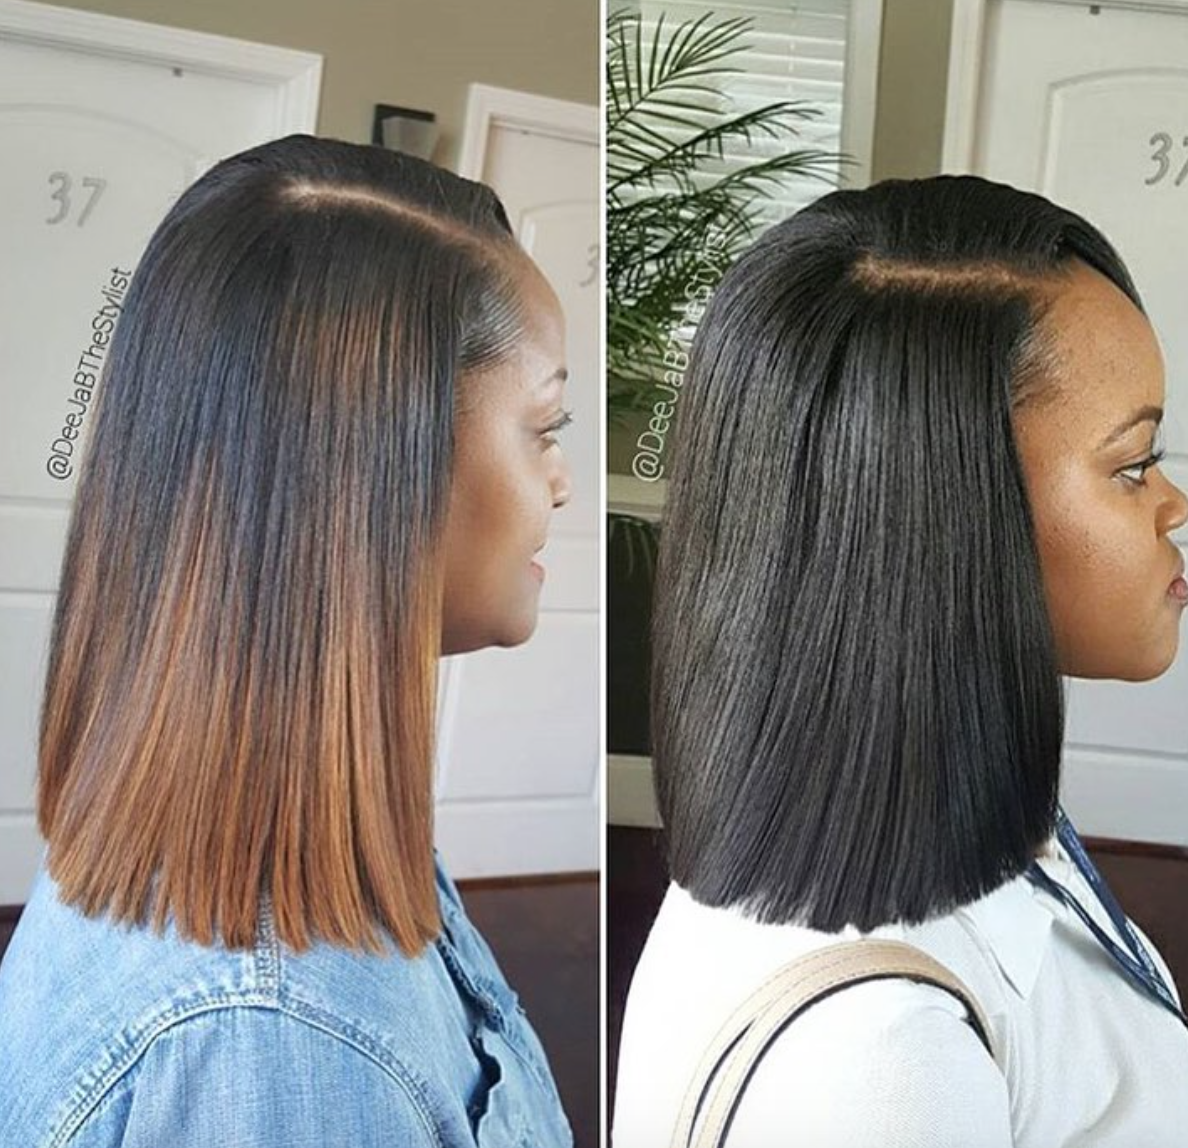 Amazing Sew In Vs Quick Weave By Deejabthestylist Https Blackhairinformation Com Hairstyle Quick Weave Hairstyles Straight Hairstyles Natural Hair Styles